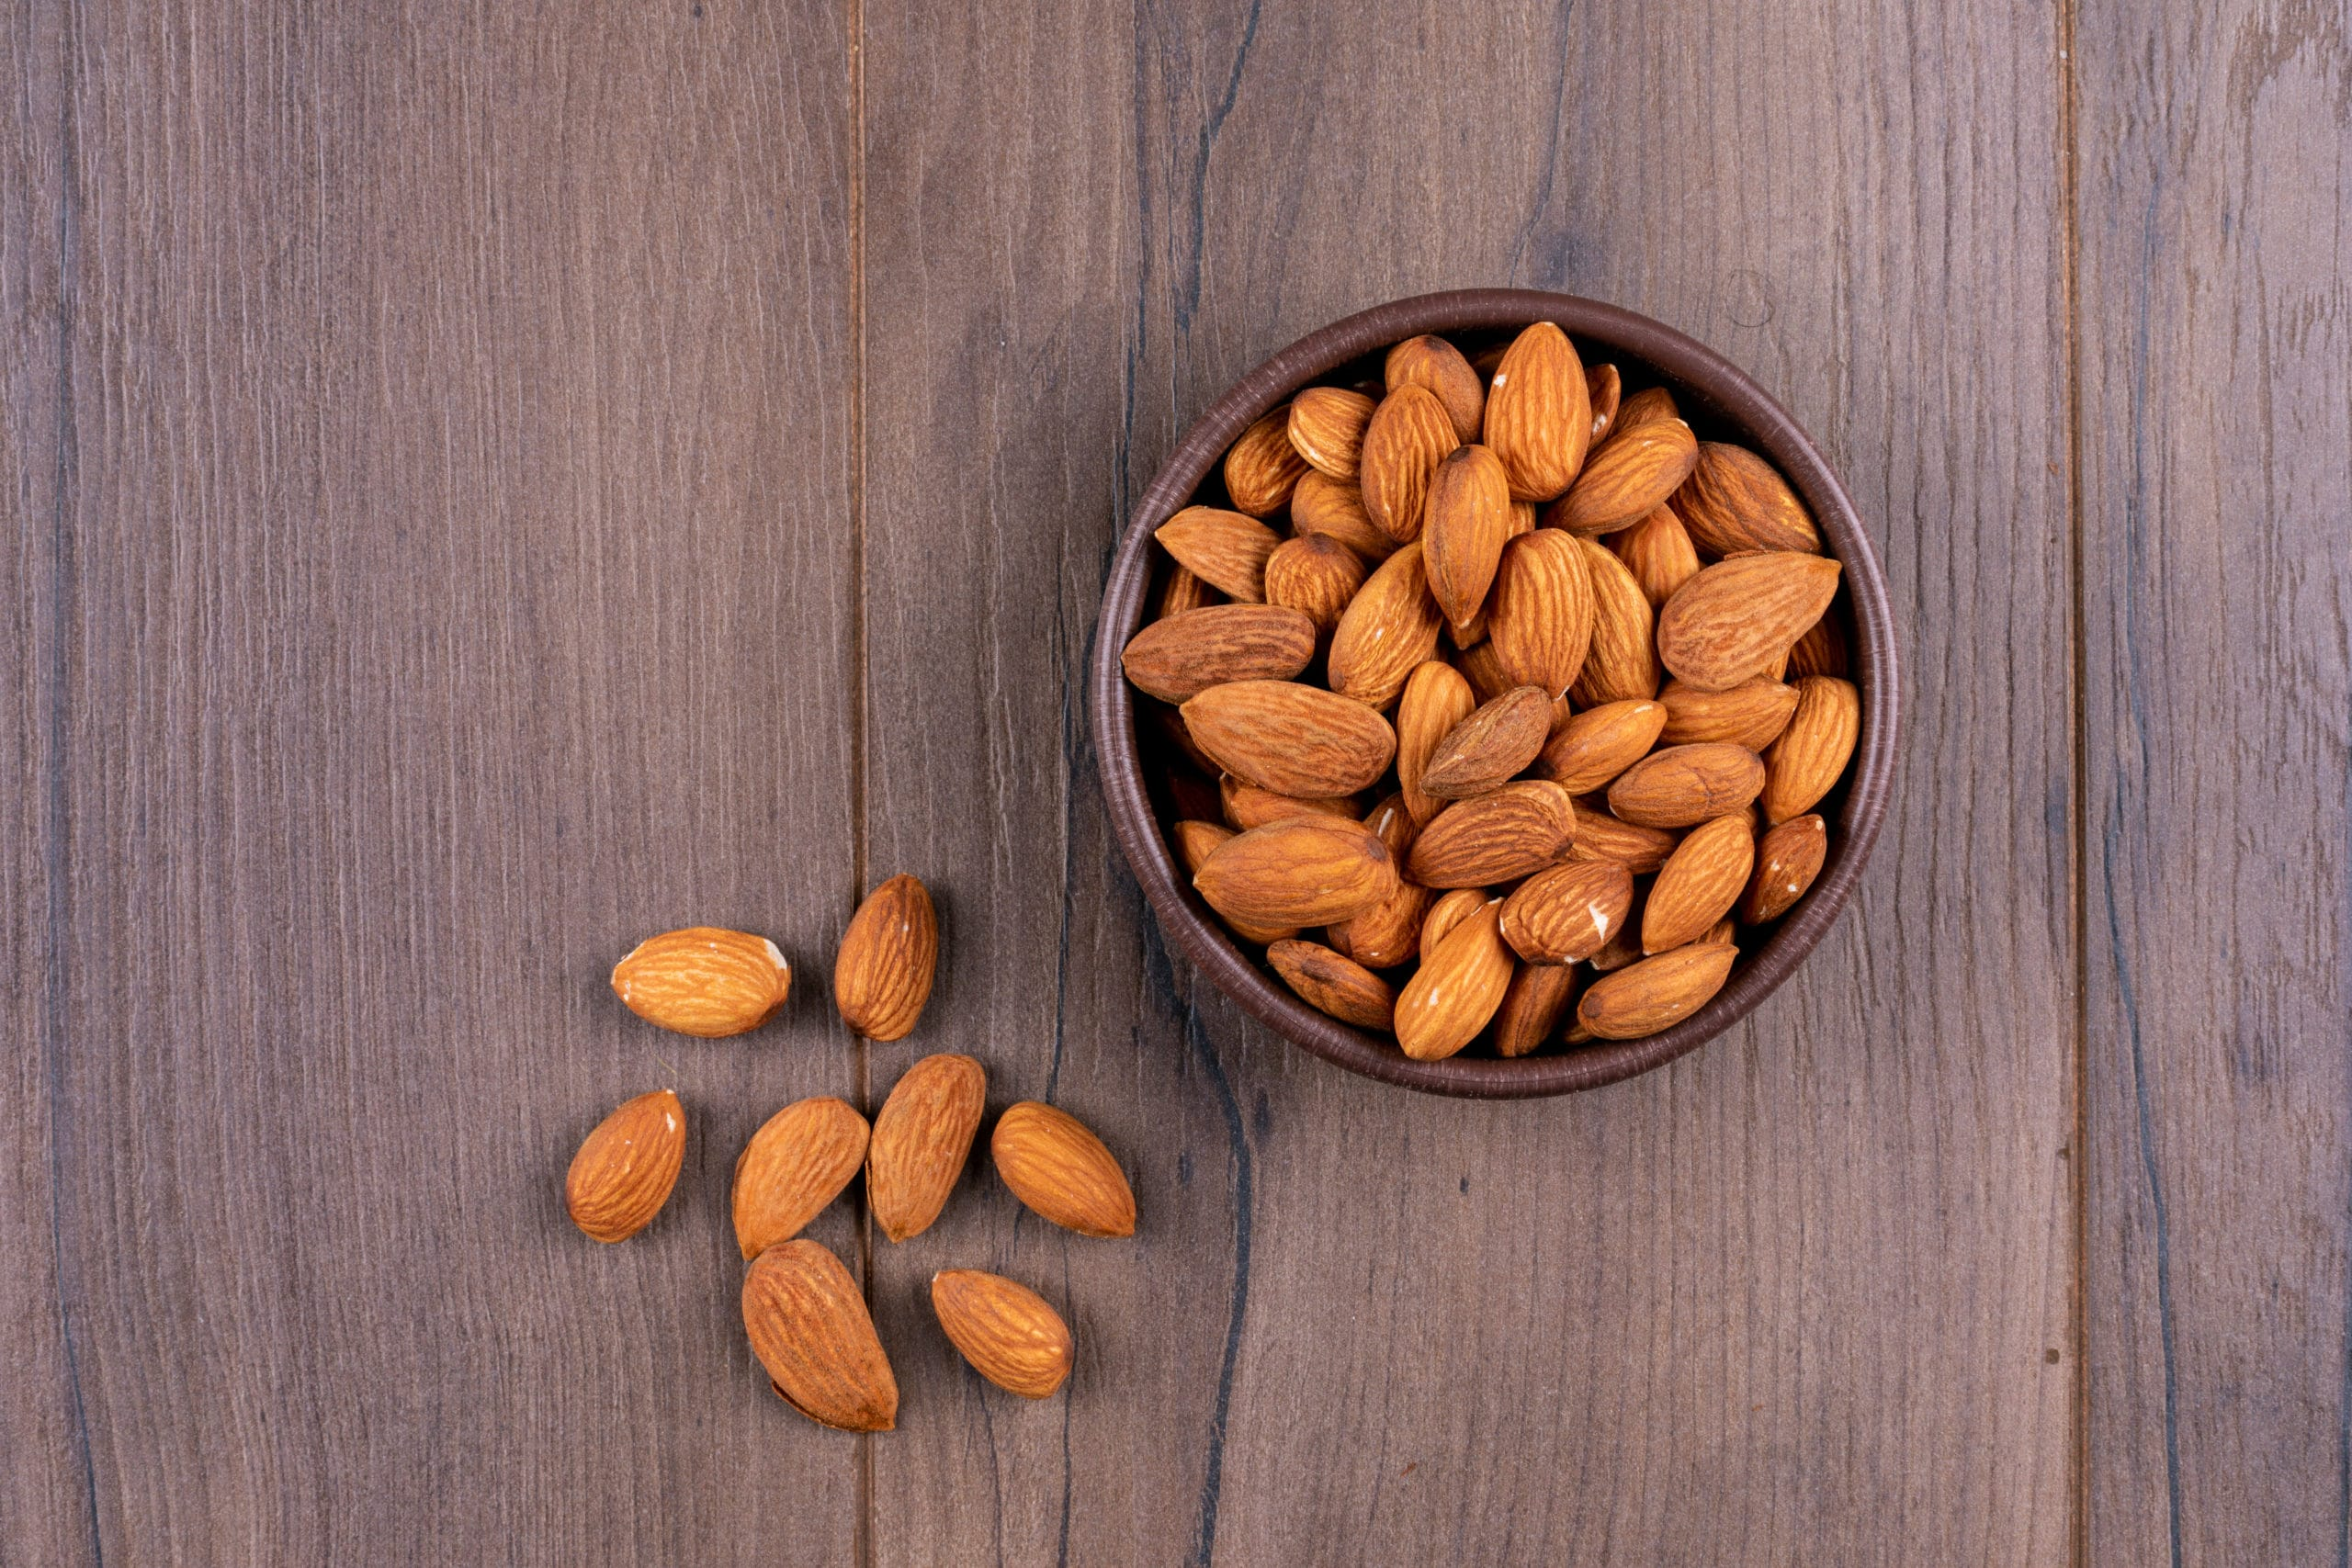 Learn about the most important types of Spanish almonds